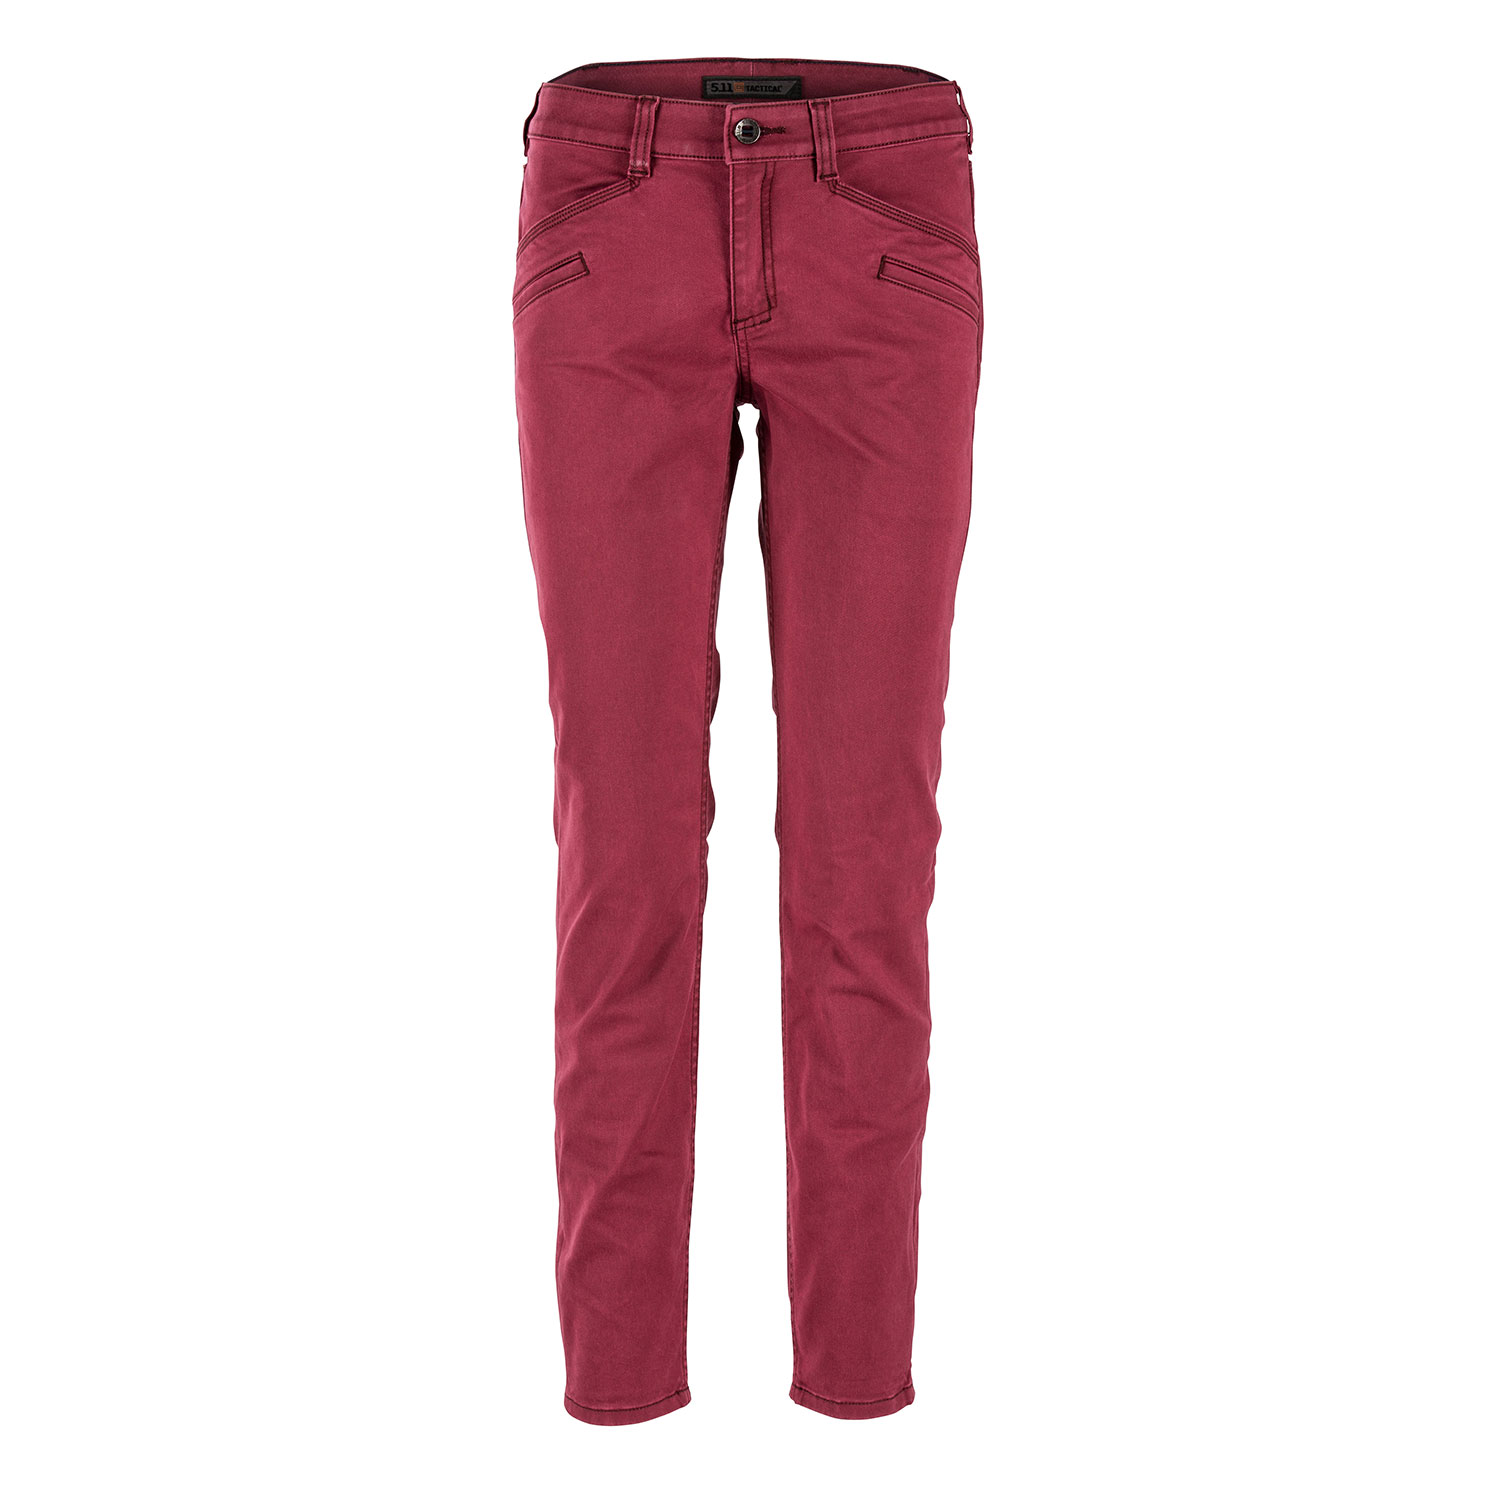 5.11 Tactical Women's Defender Flex Slim Pants